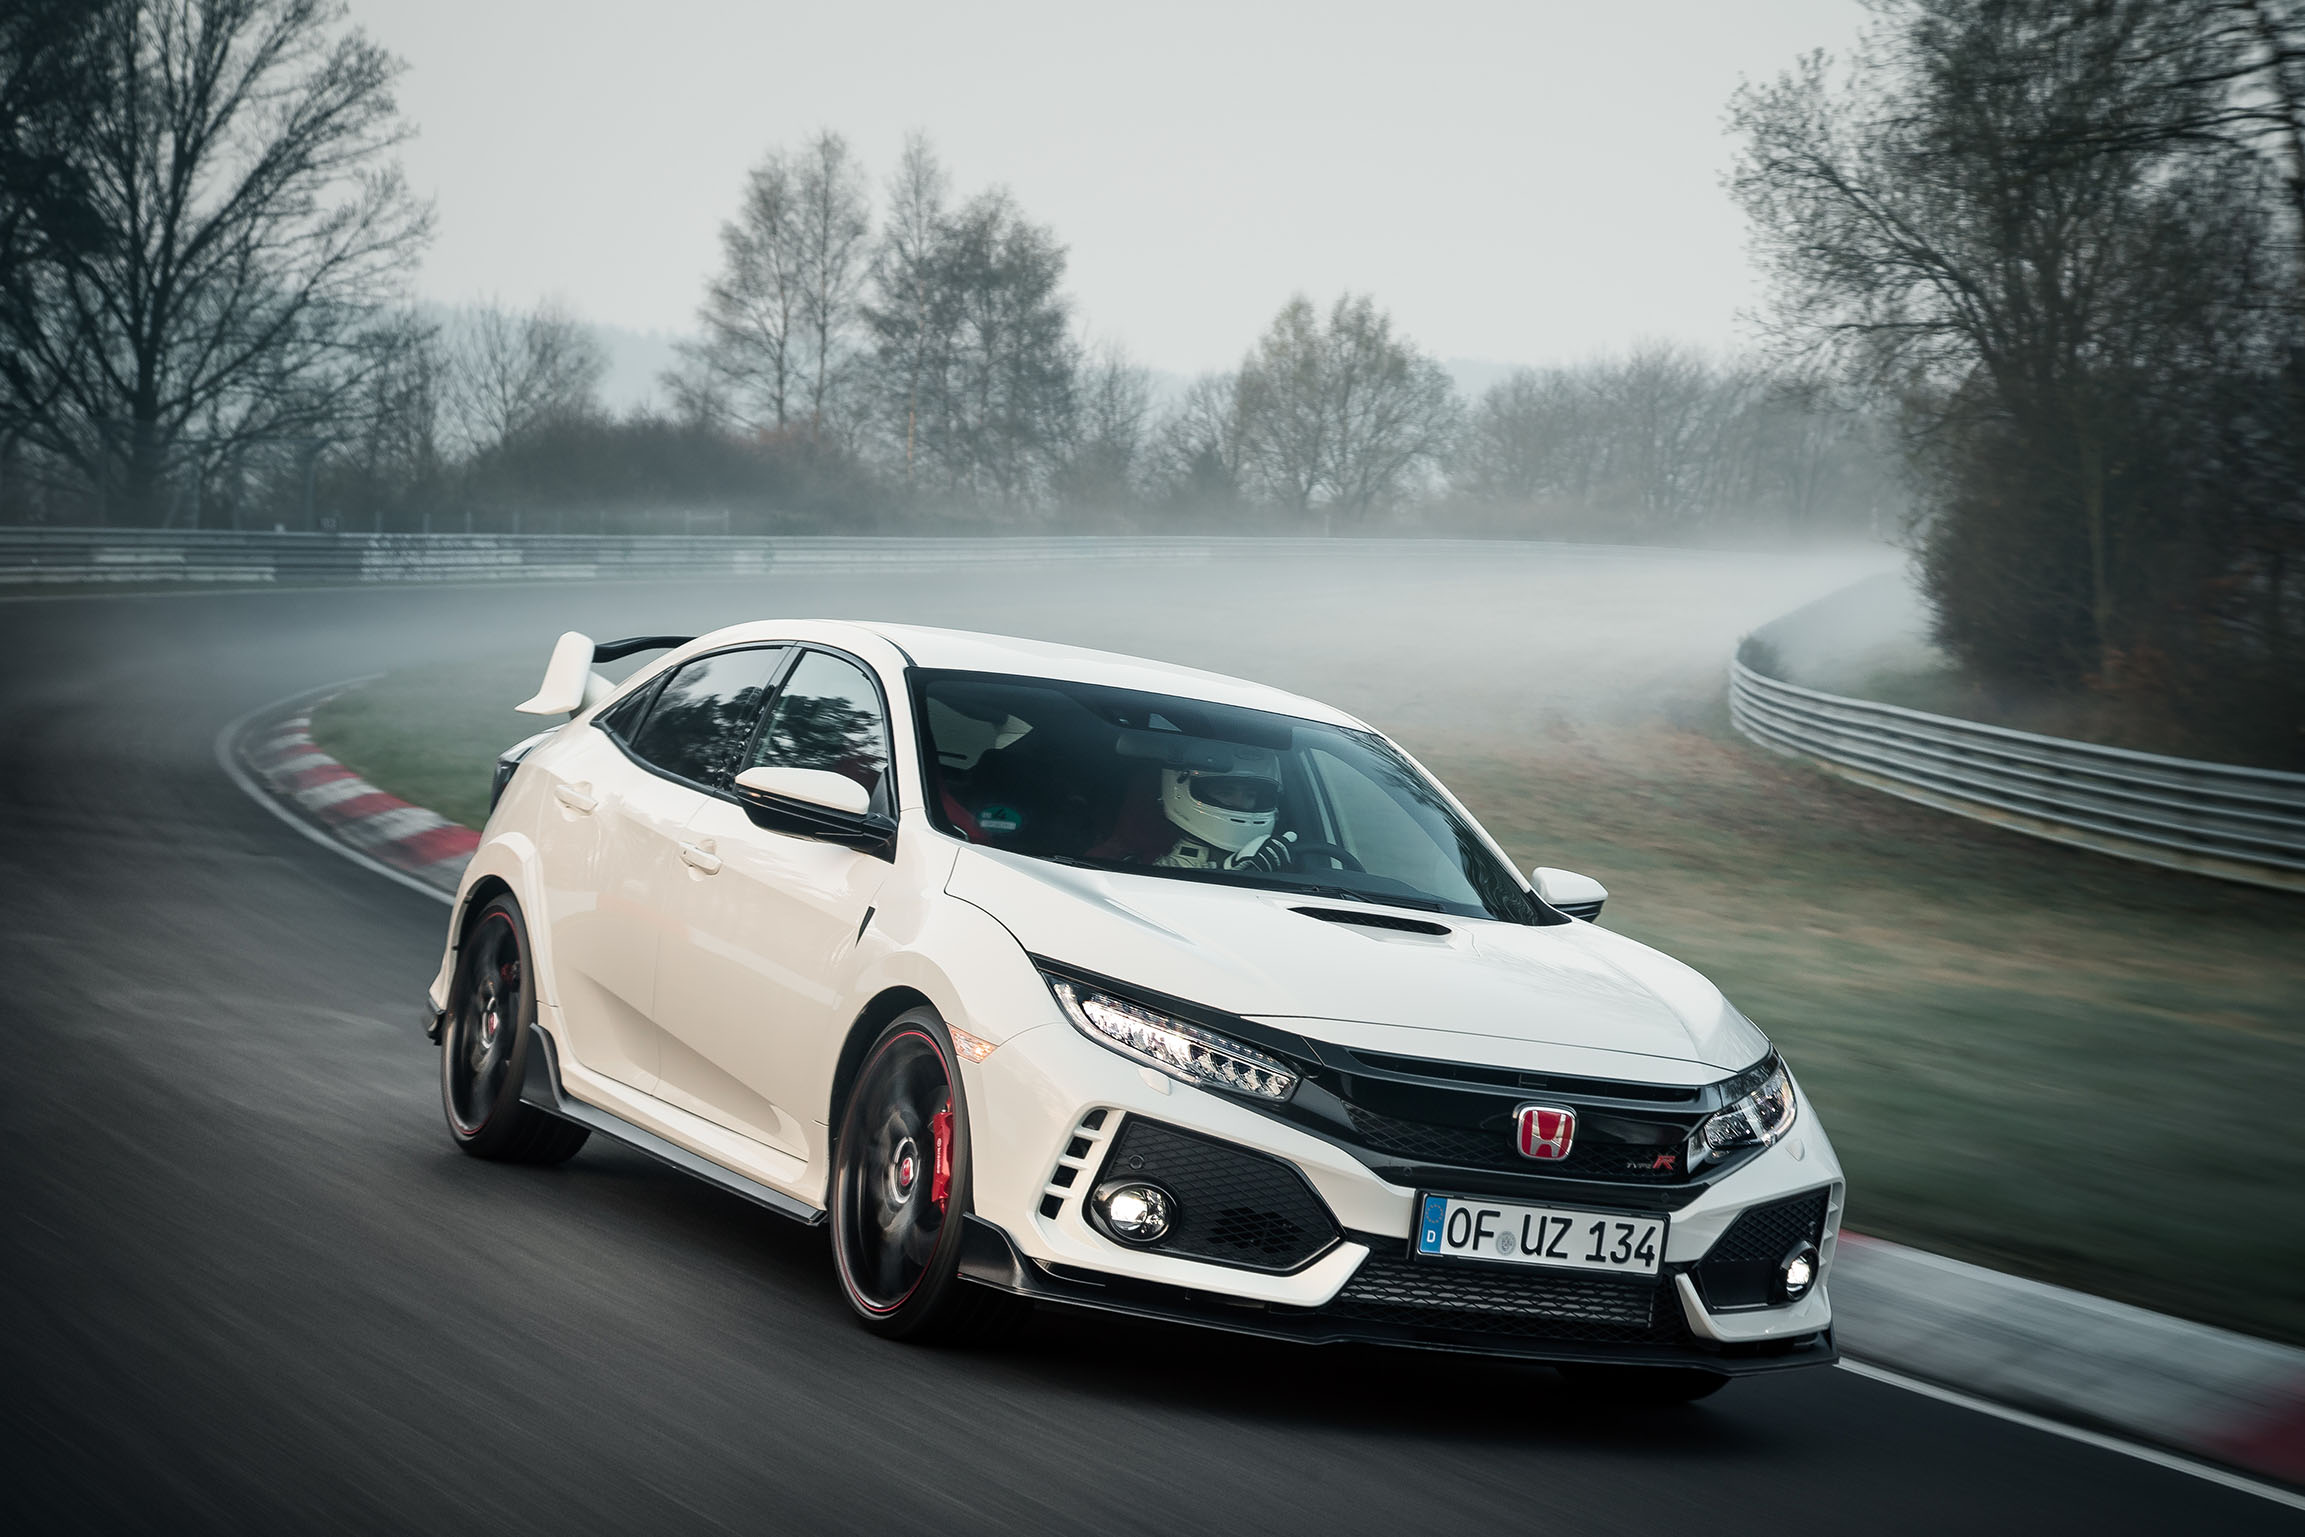 The All New 2017 Honda Civic Type R Has Set A New Lap Record For Front Wheel  Drive Cars At The Nurburgring Nordschleife. On April 3rd, 2017, A  Development ...